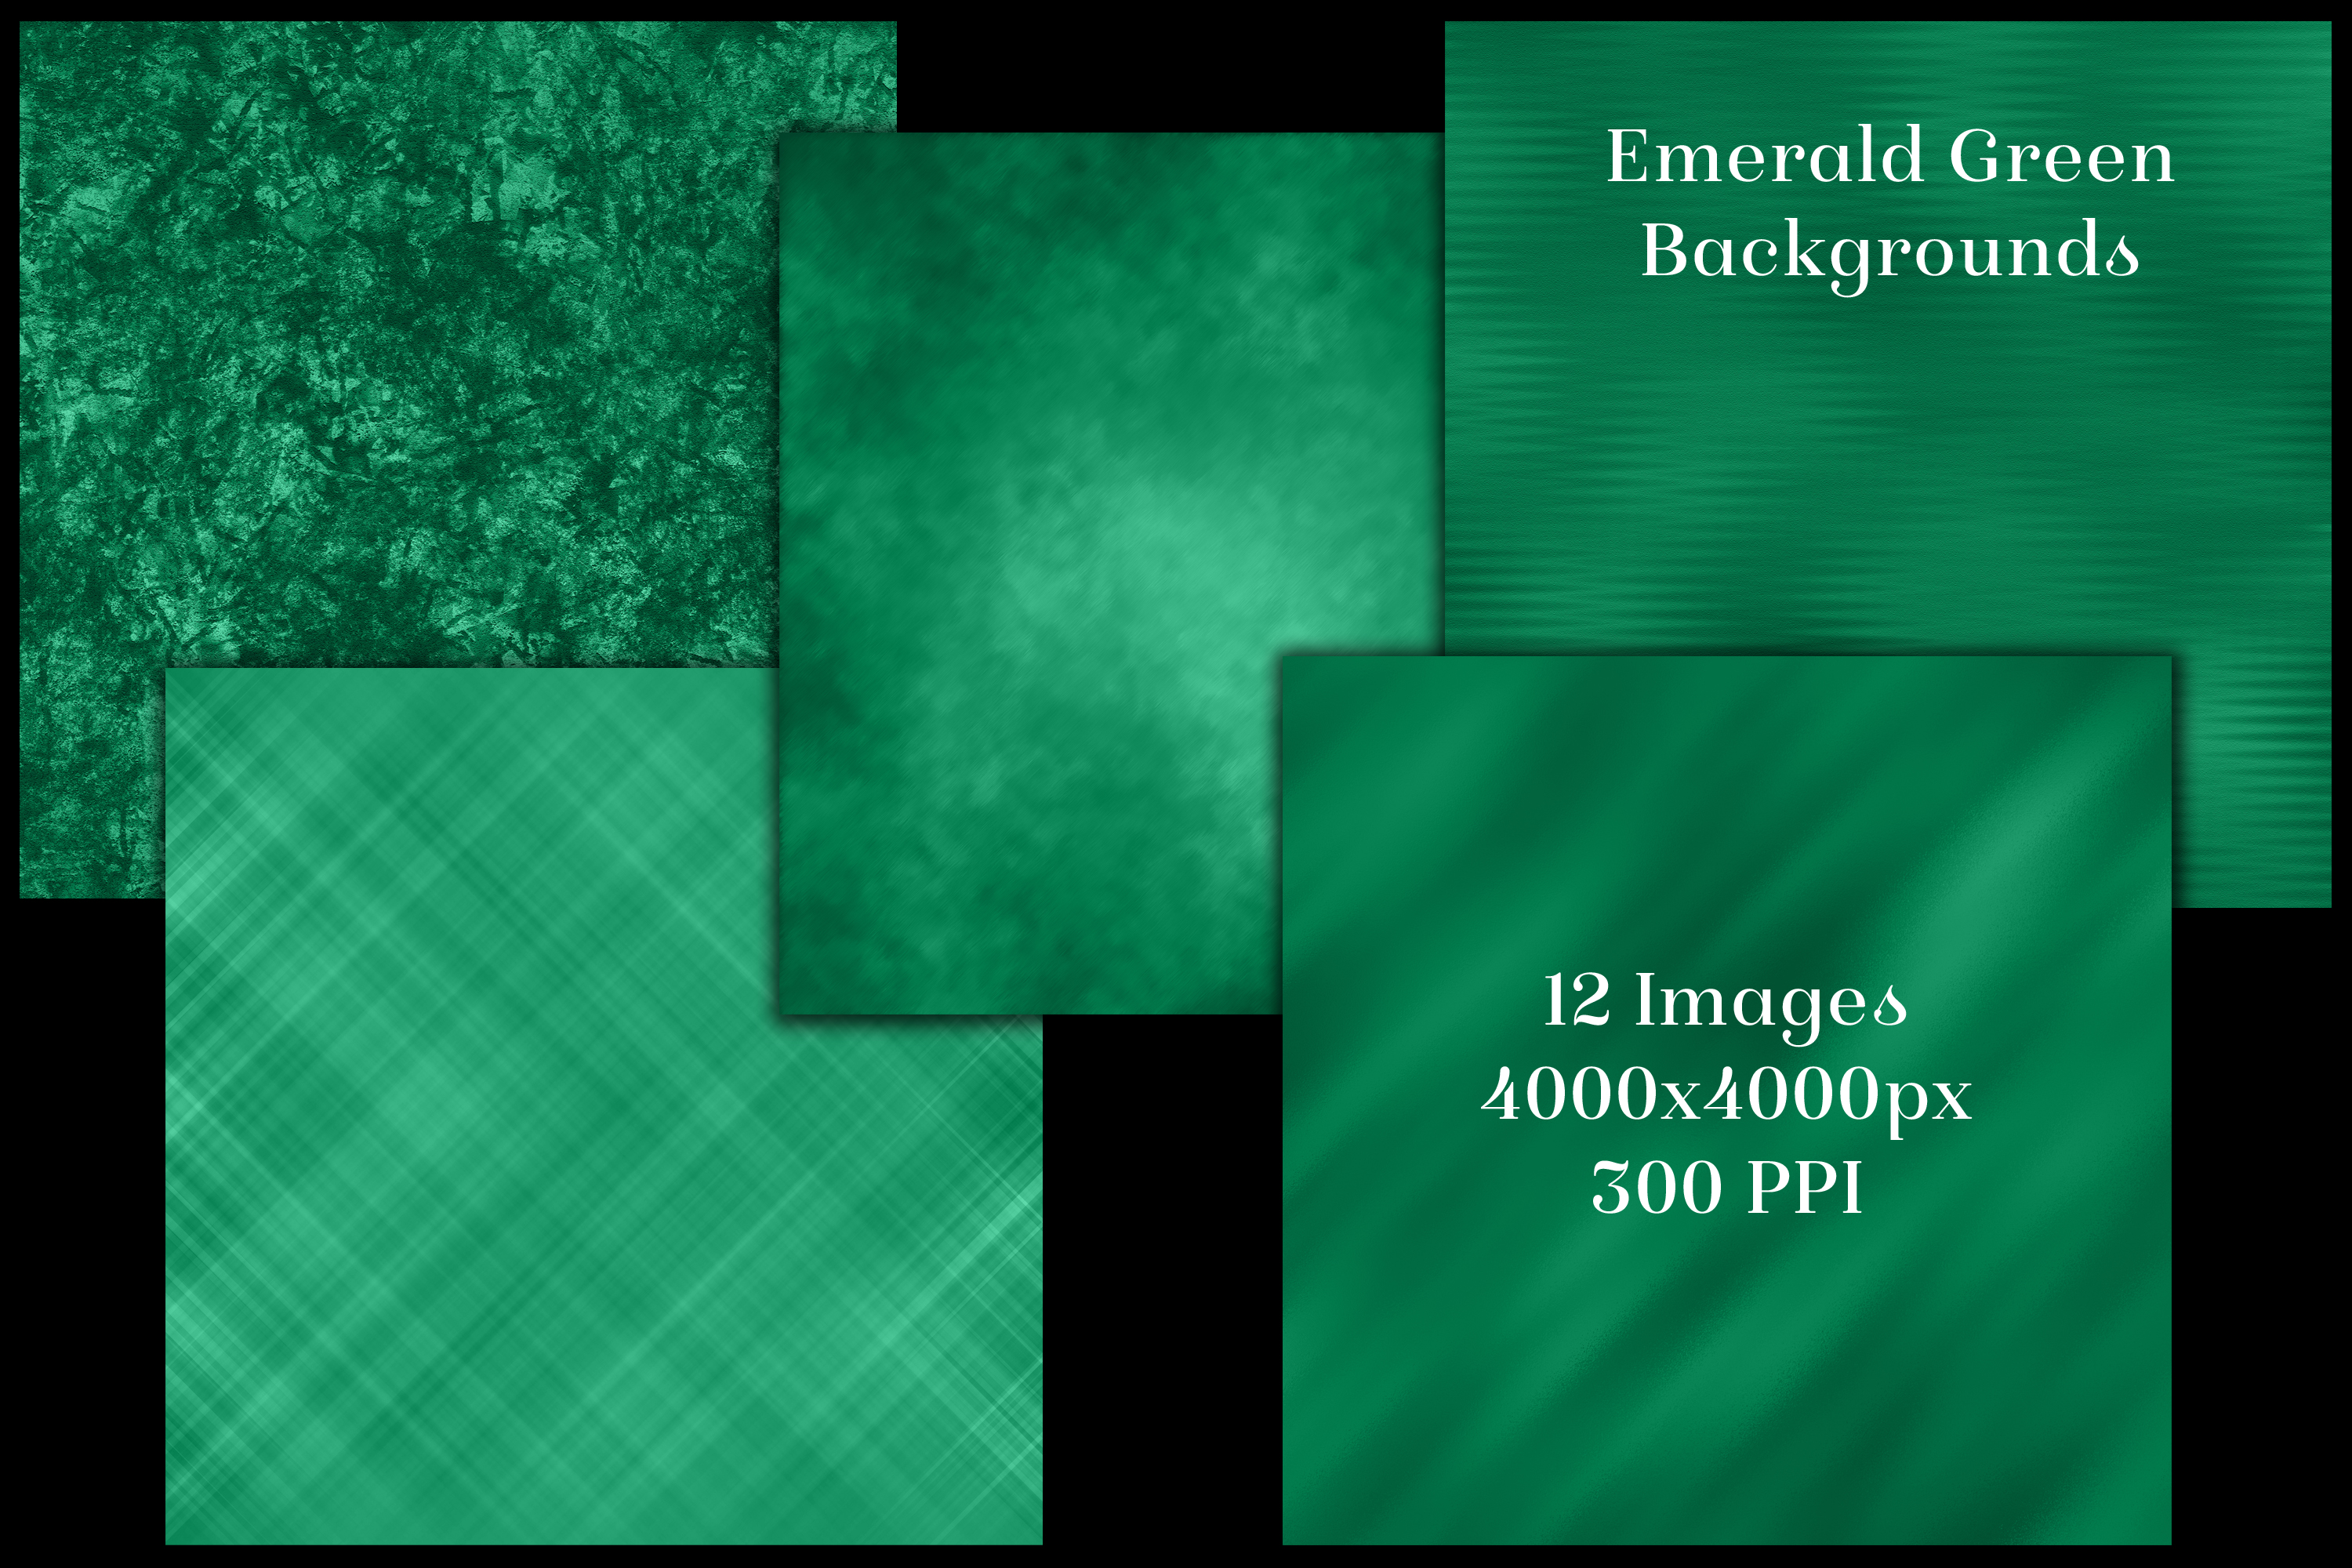 Emerald Green Backgrounds - 12 Image Textures Set example image 2